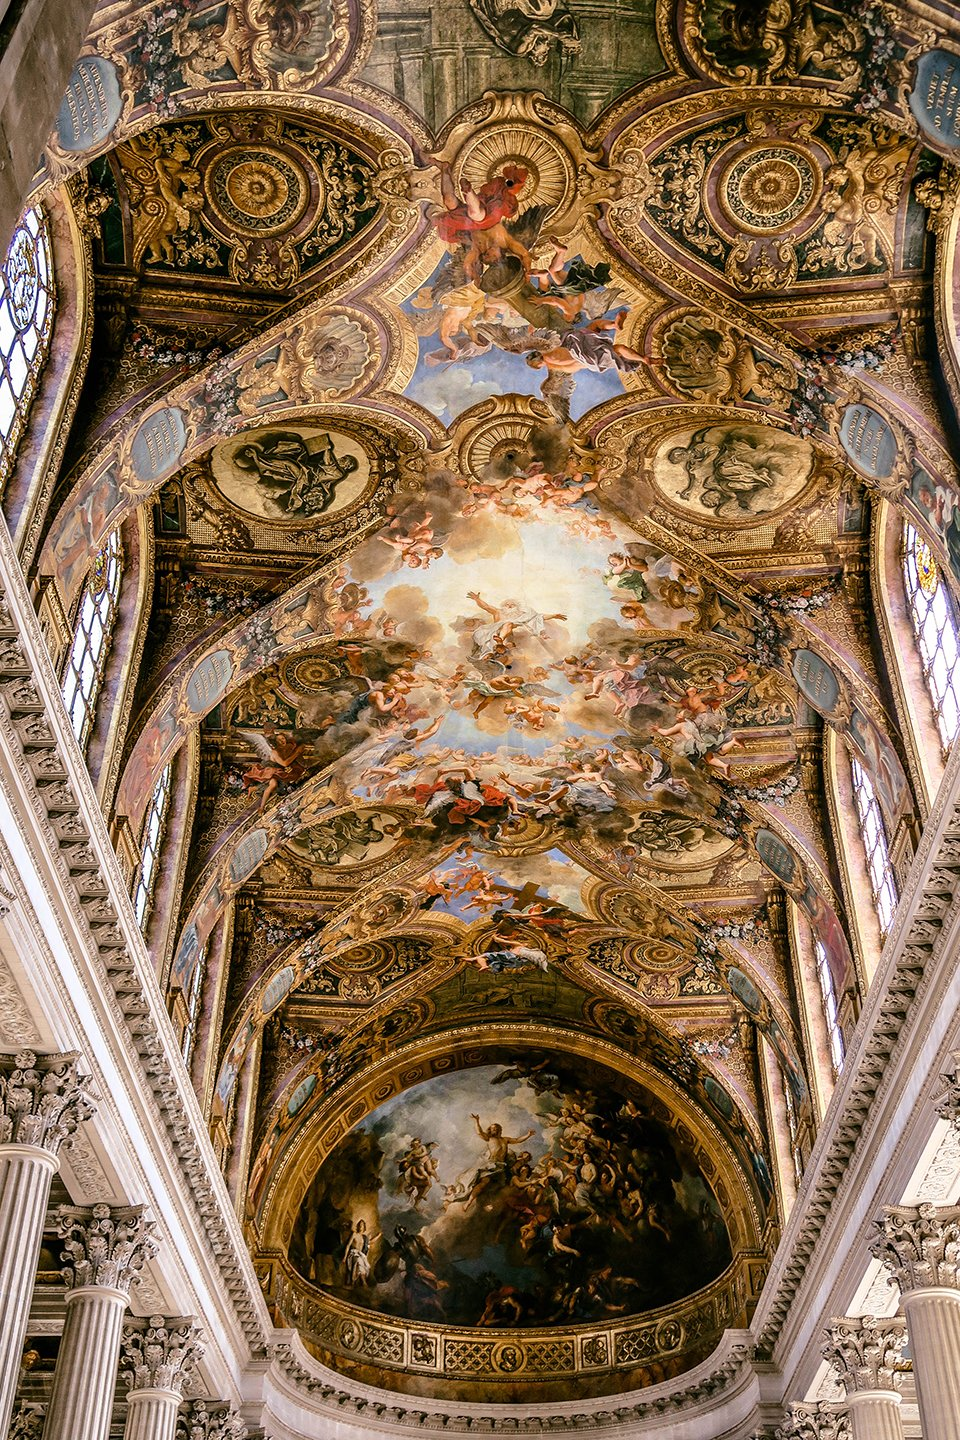 The Royal Chapel at the Palace of Versailles (France).